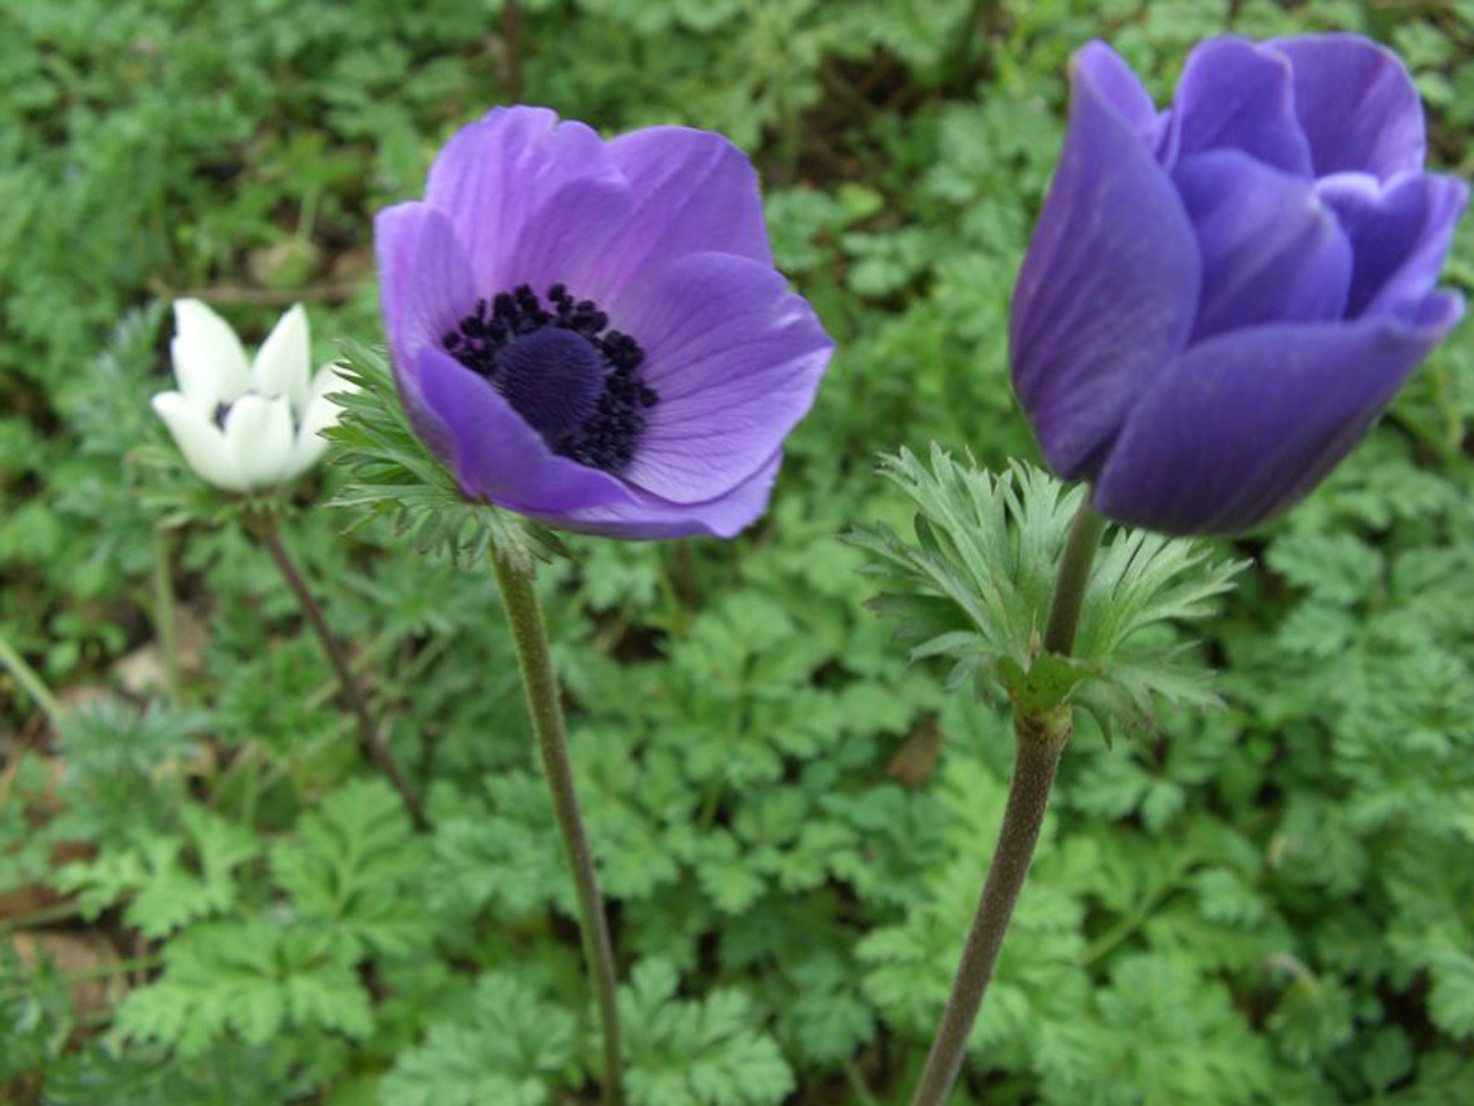 Colour pollination ecology of our red anemone Sylphide is anemone...